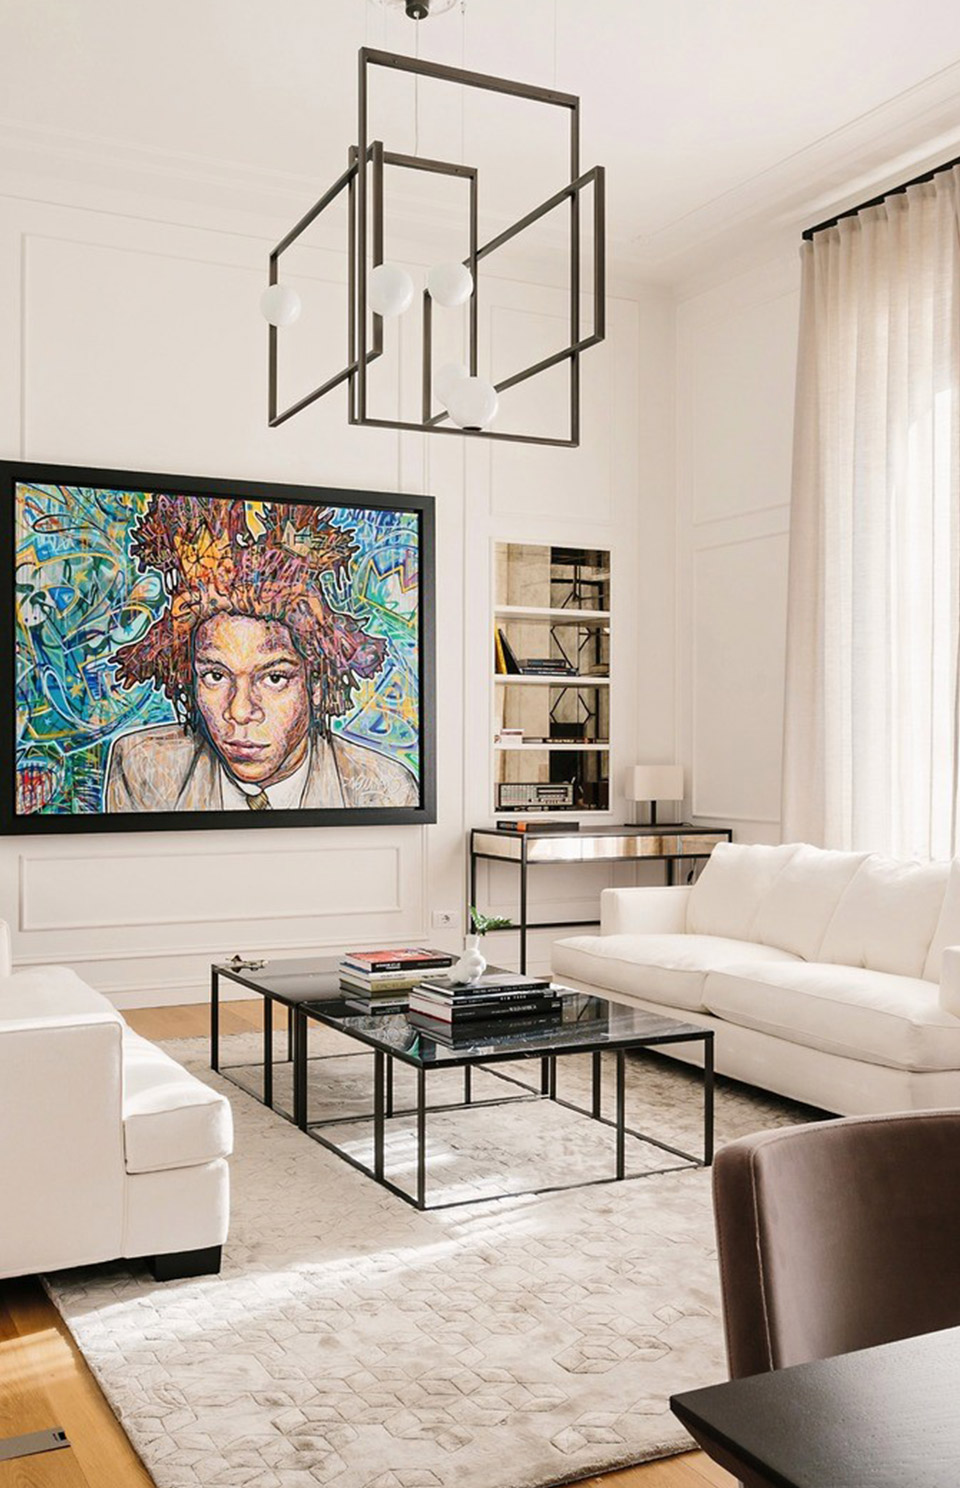 Luxury Single Room Art Suite